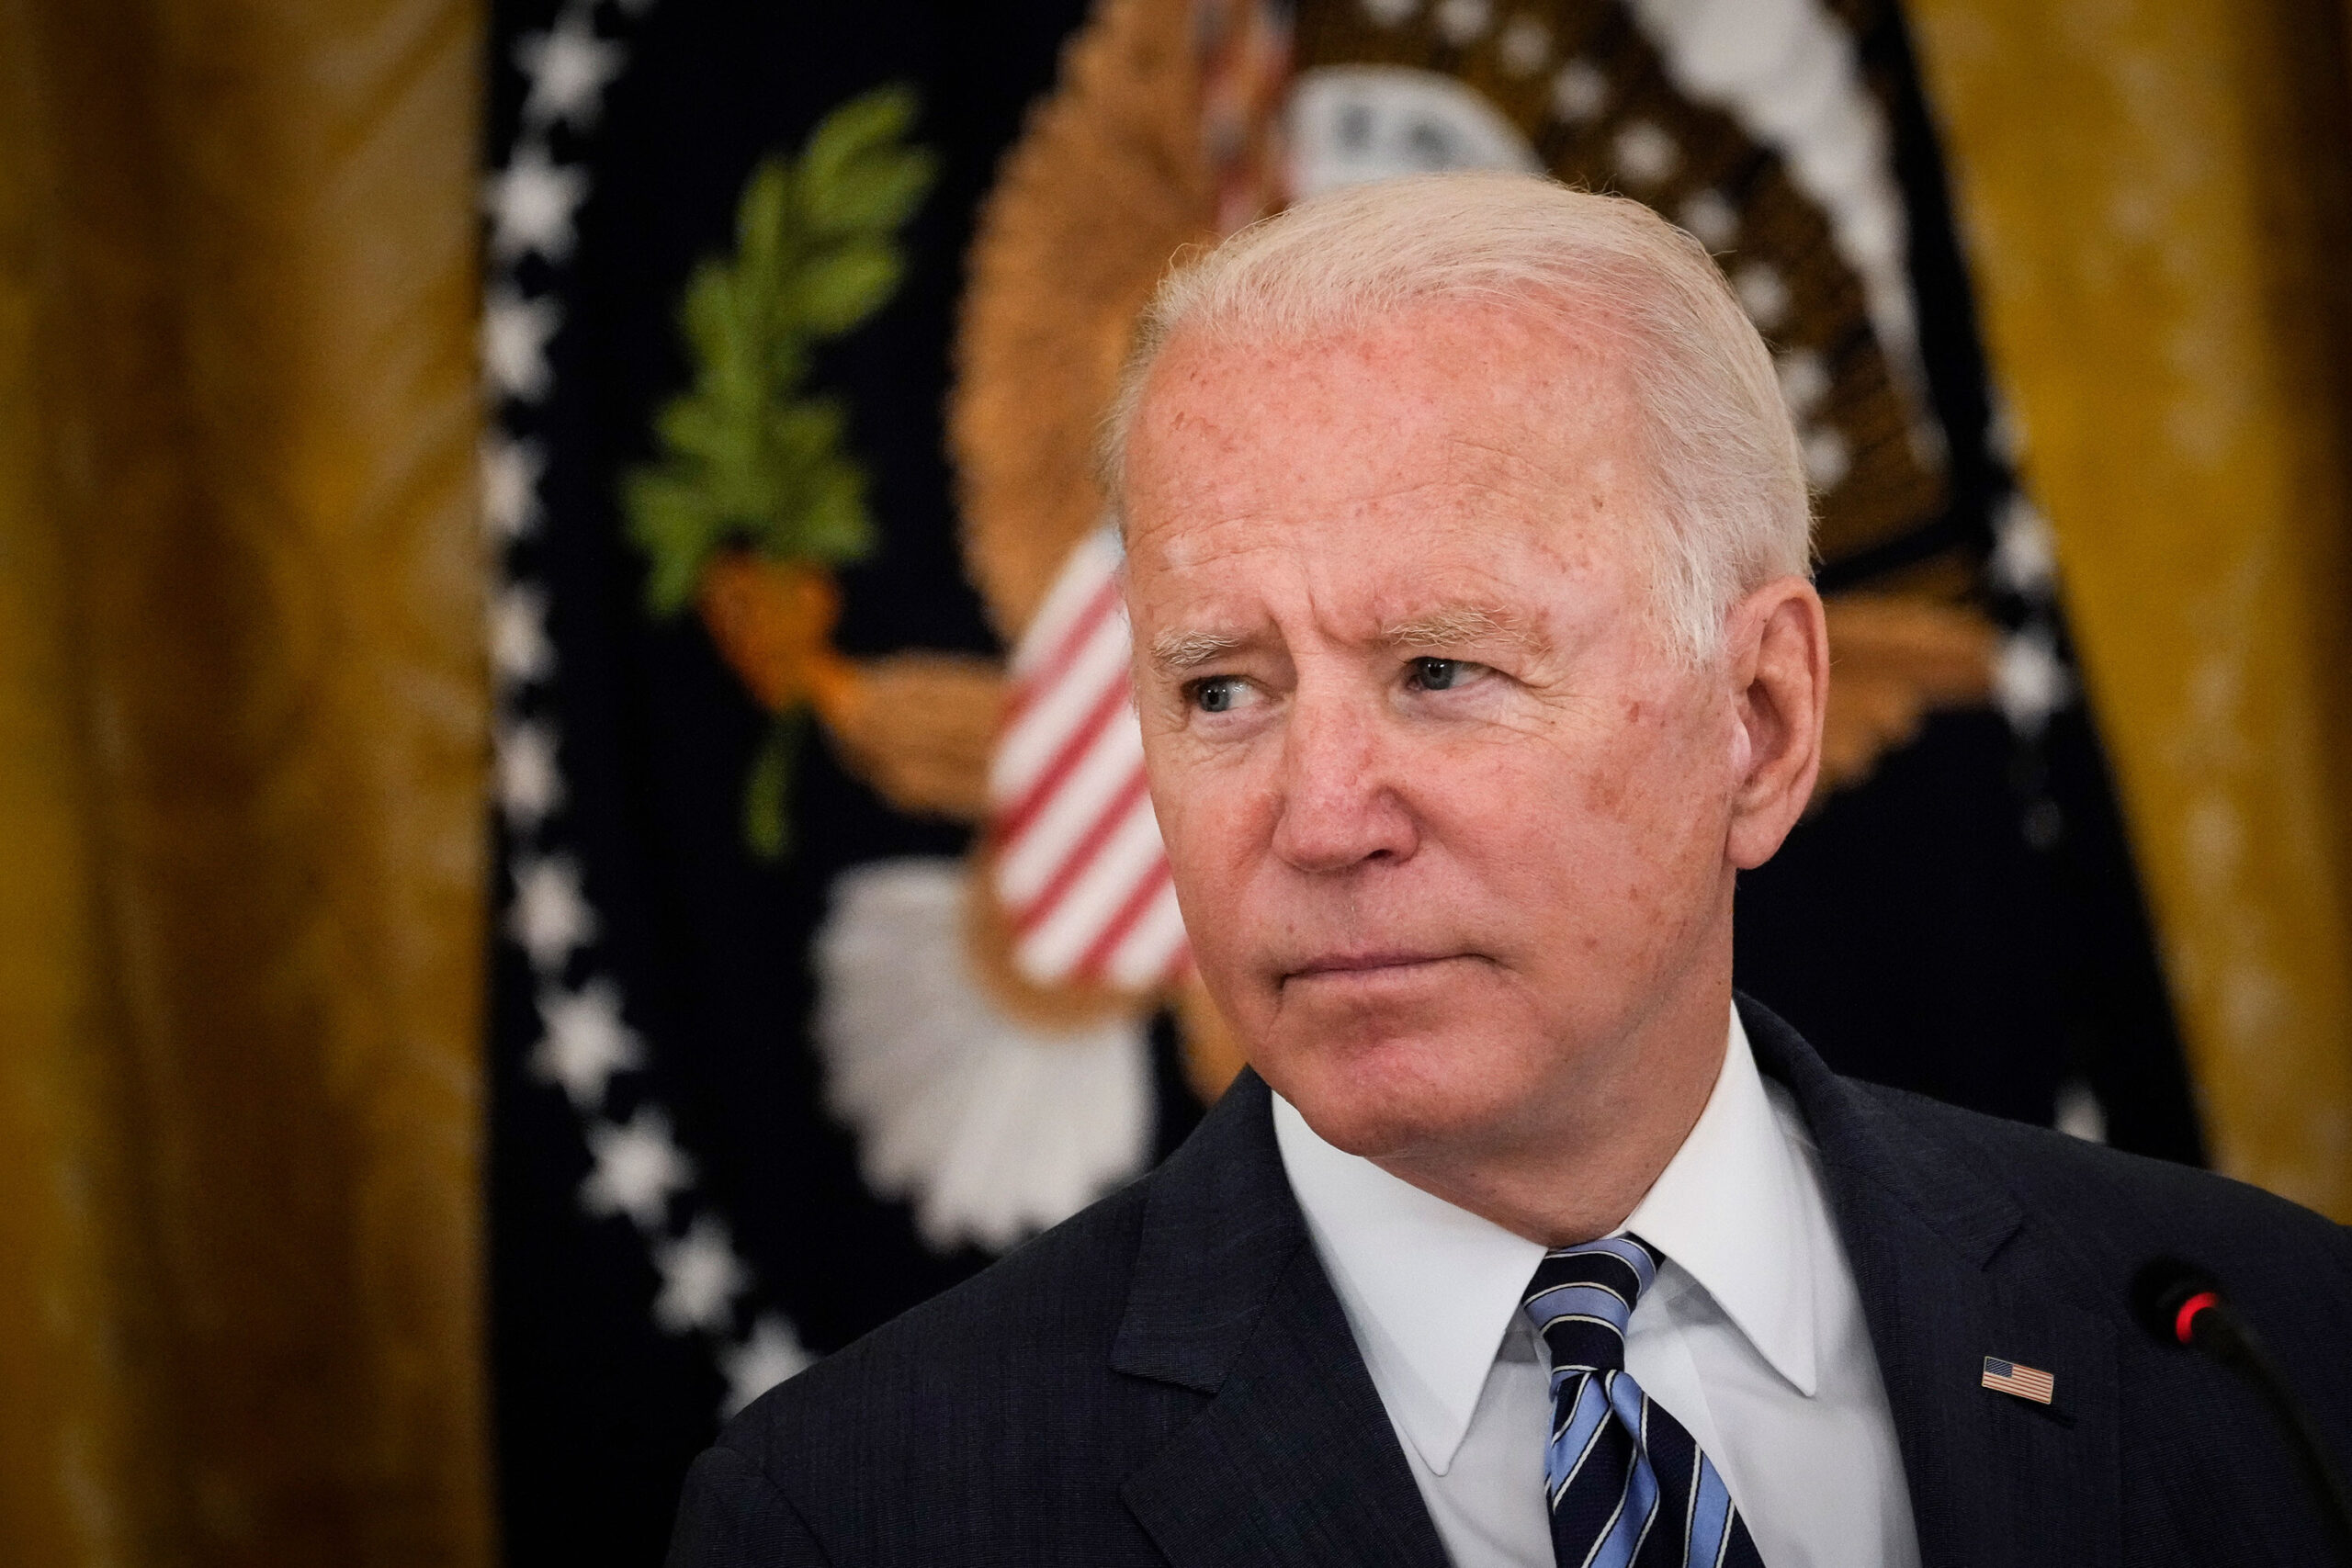 <i>Drew Angerer/Getty Images</i><br/>President Joe Biden on Friday urged Democrats to pass massive infrastructure and social safety net legislation at a time when sharp disagreements between moderate and progressive members of his party threaten his domestic agenda.